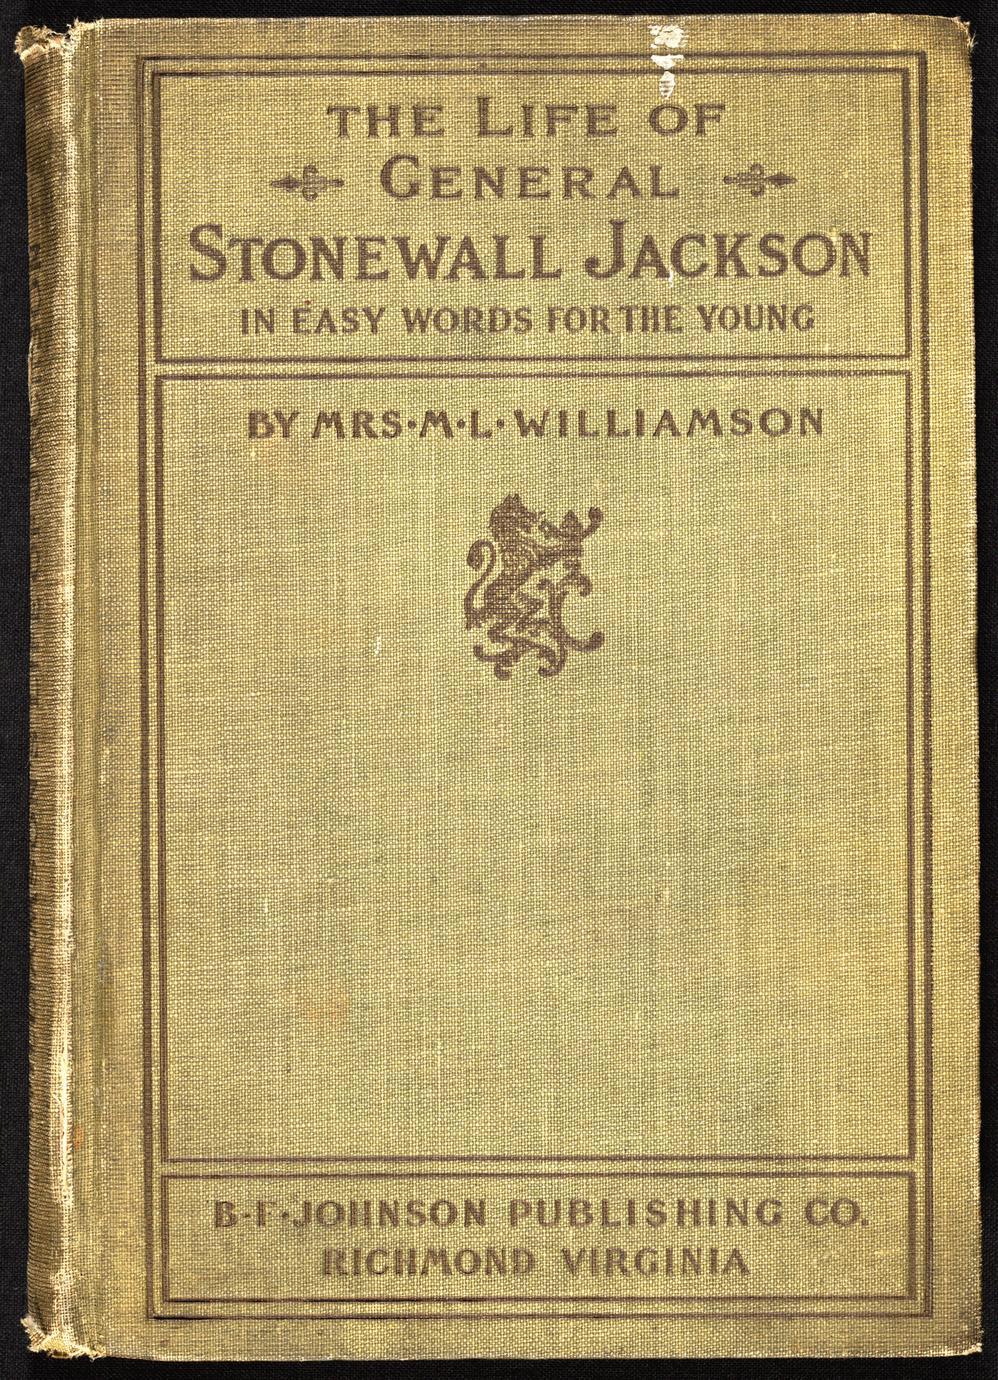 The life of Gen. Thos. J. Jackson : Stonewall, for the young, fourth reader grade (1 of 2)